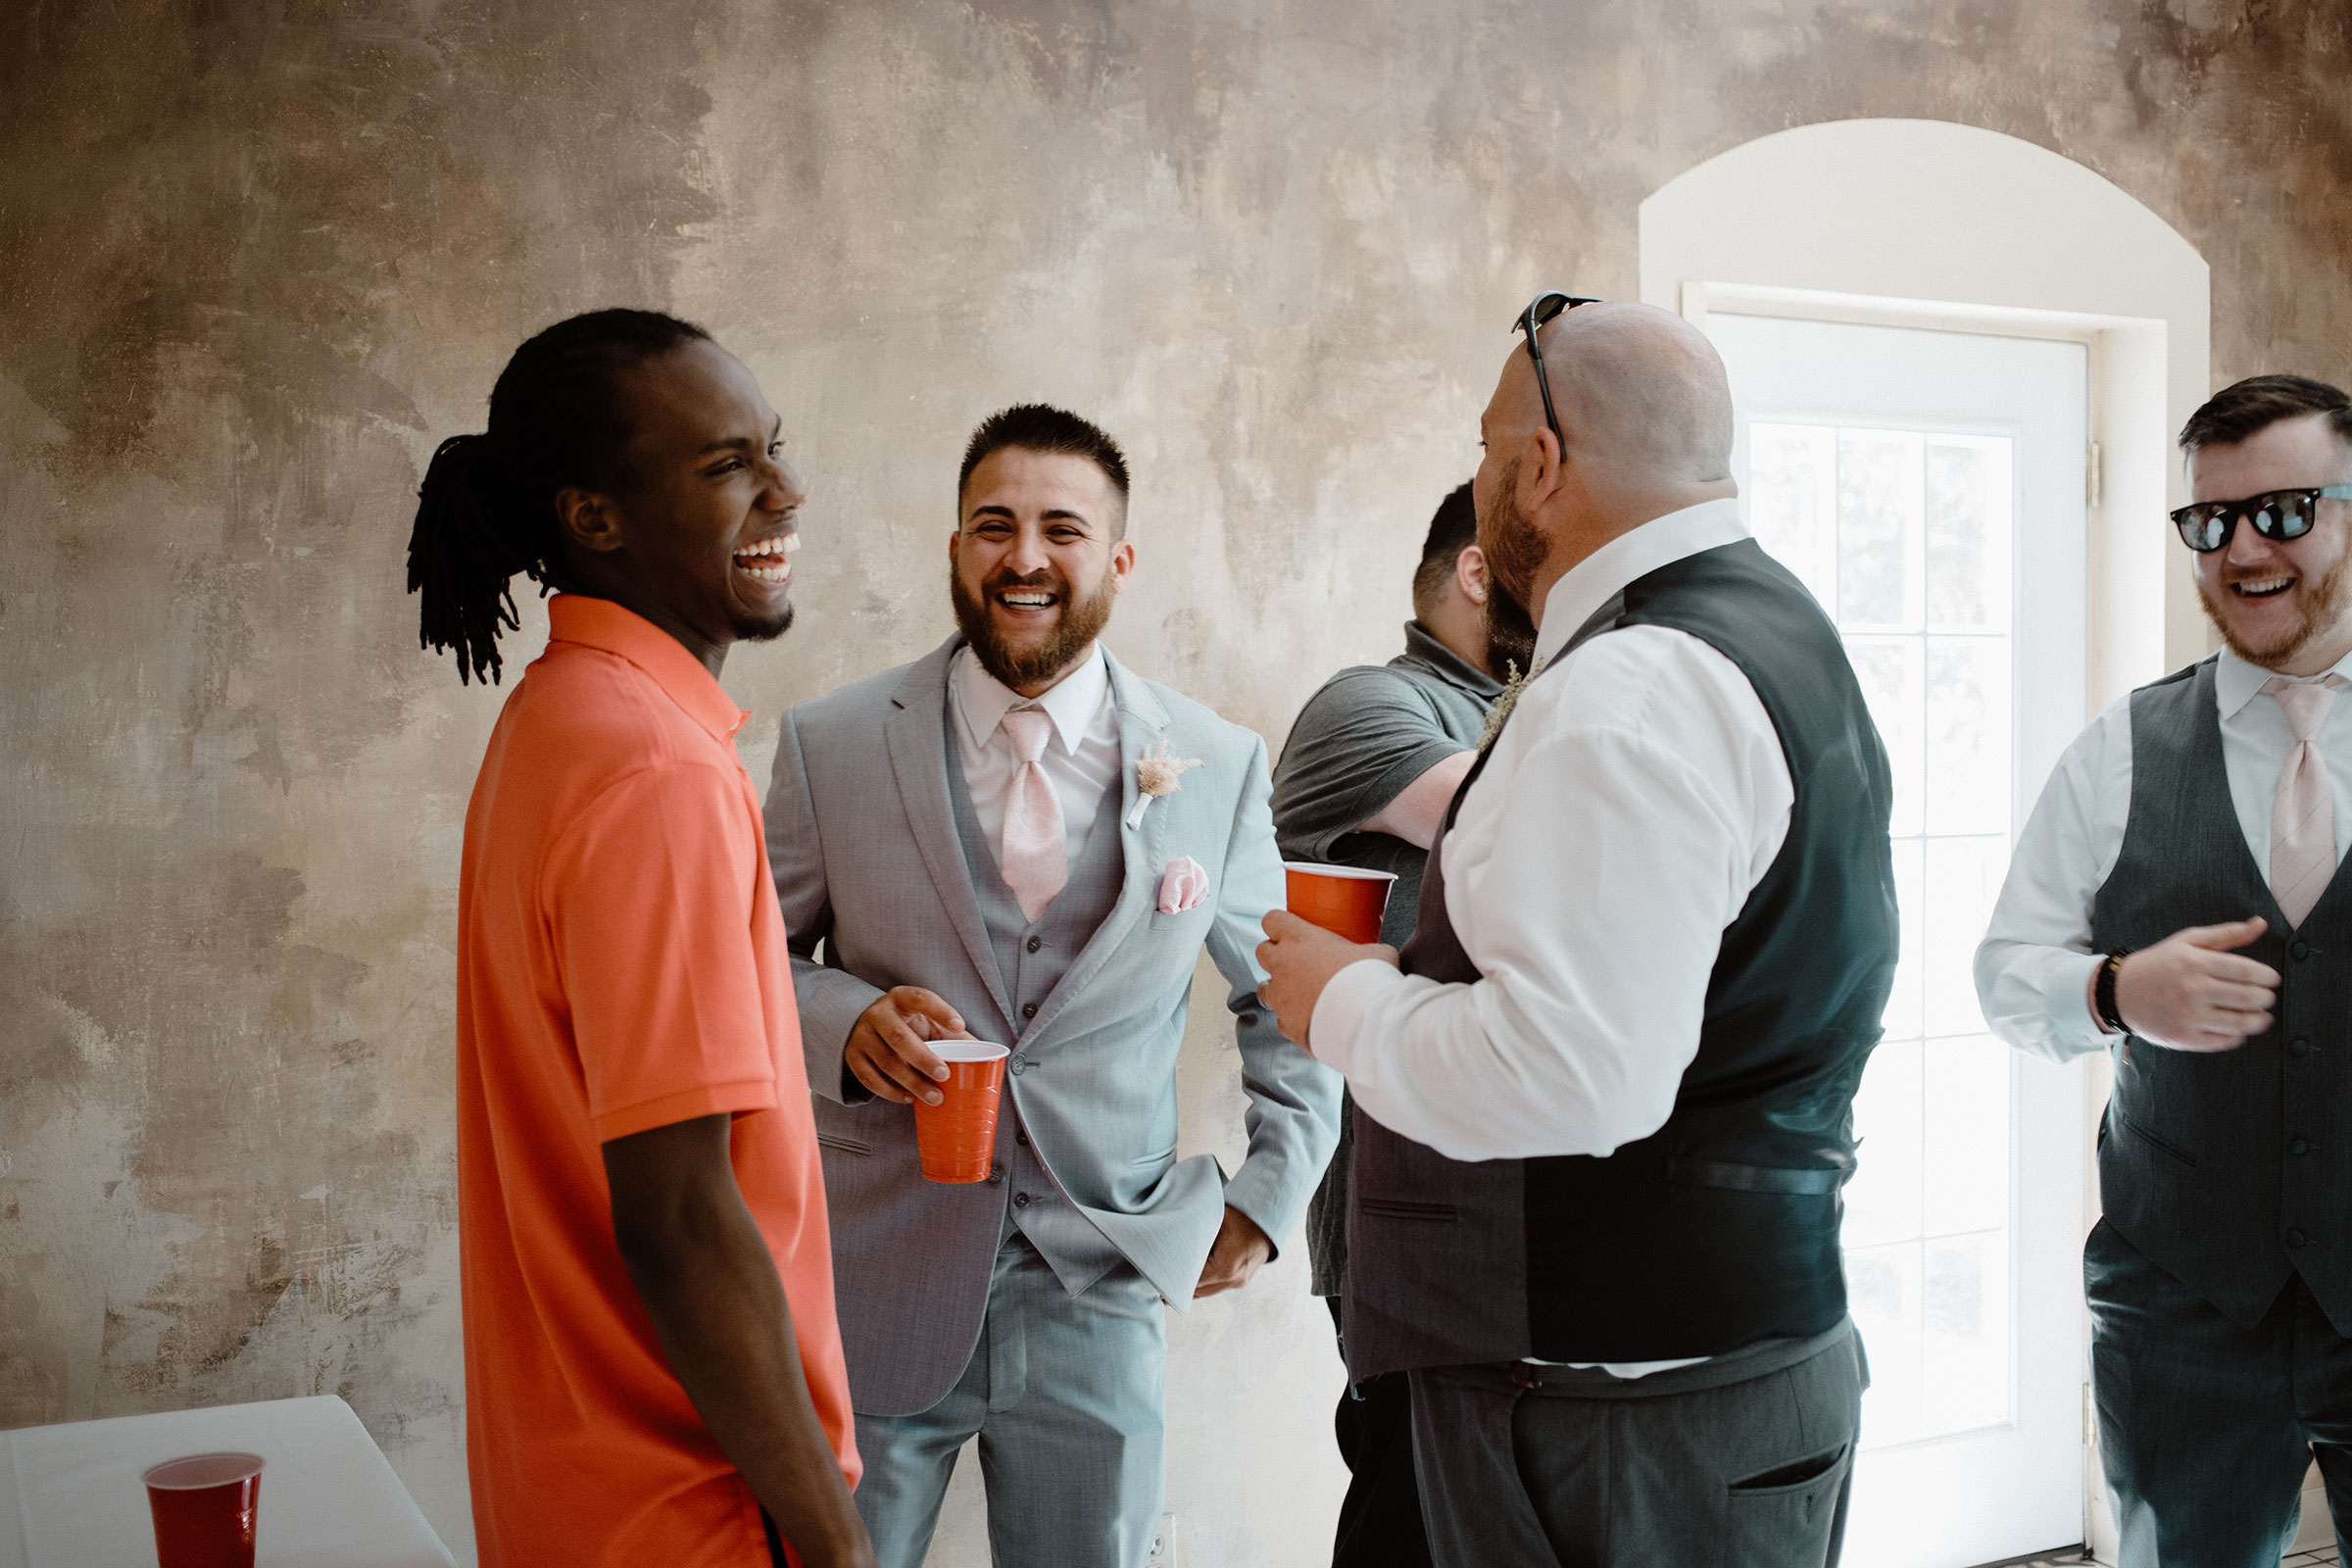 groom-lauhging-and-talking-with-guests-wedding-summerset-winery-indianola-iowa-raelyn-ramey-photography.jpg